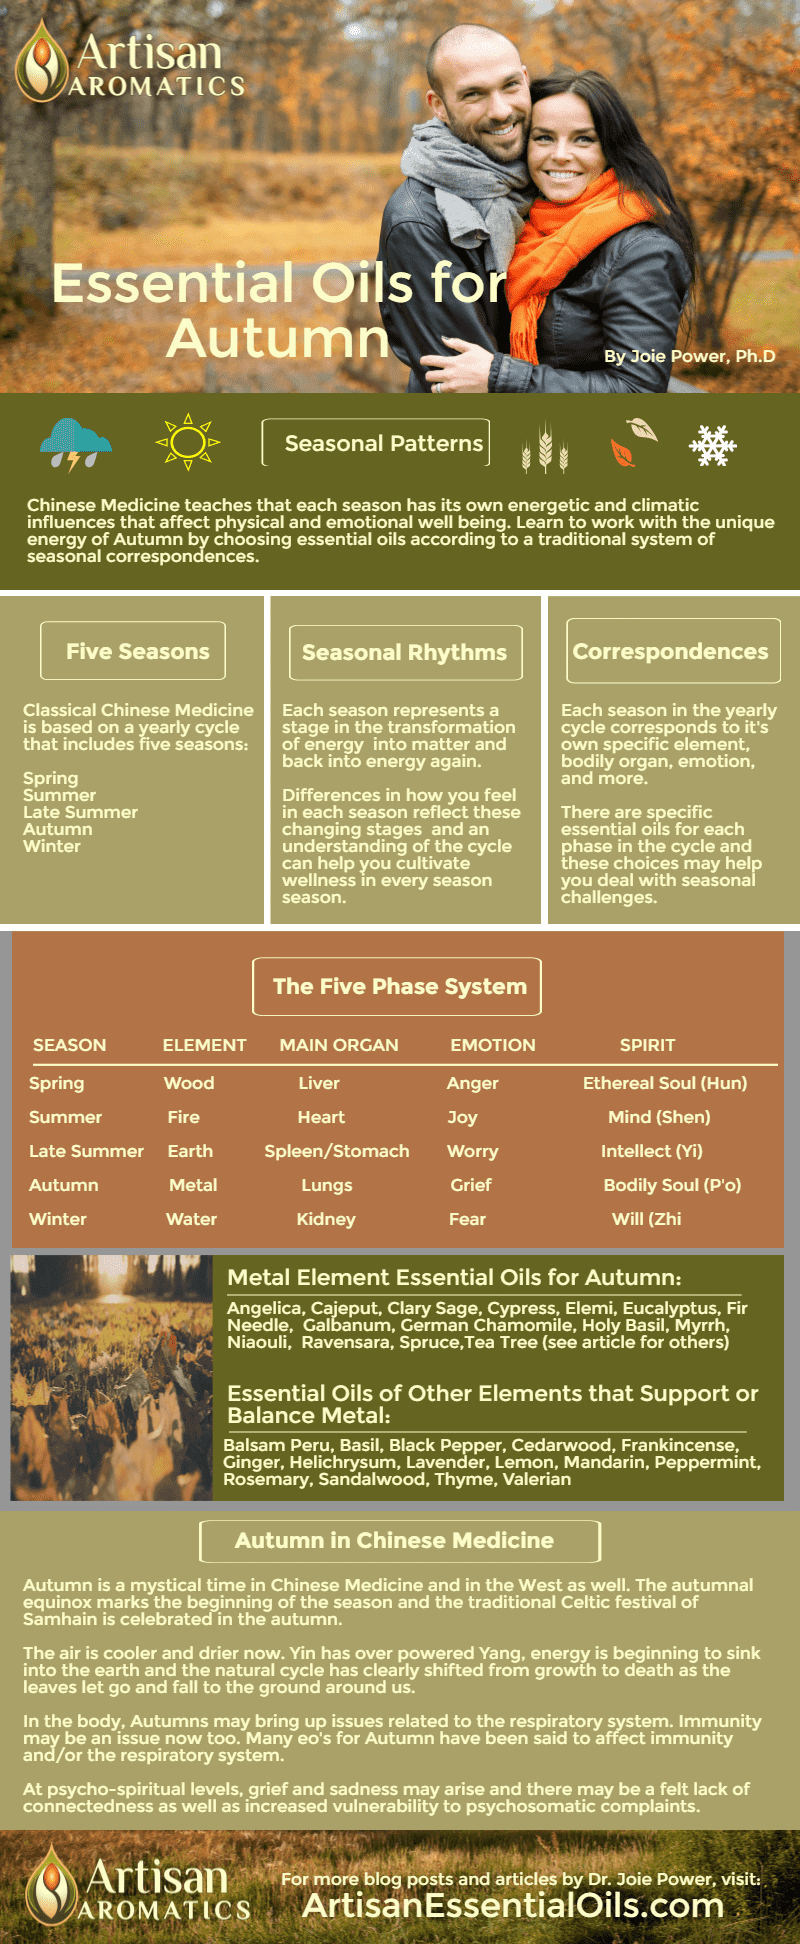 Artisan-Aromatics-EOs-for-Autumn-Infographic-Dr-Joie-Power